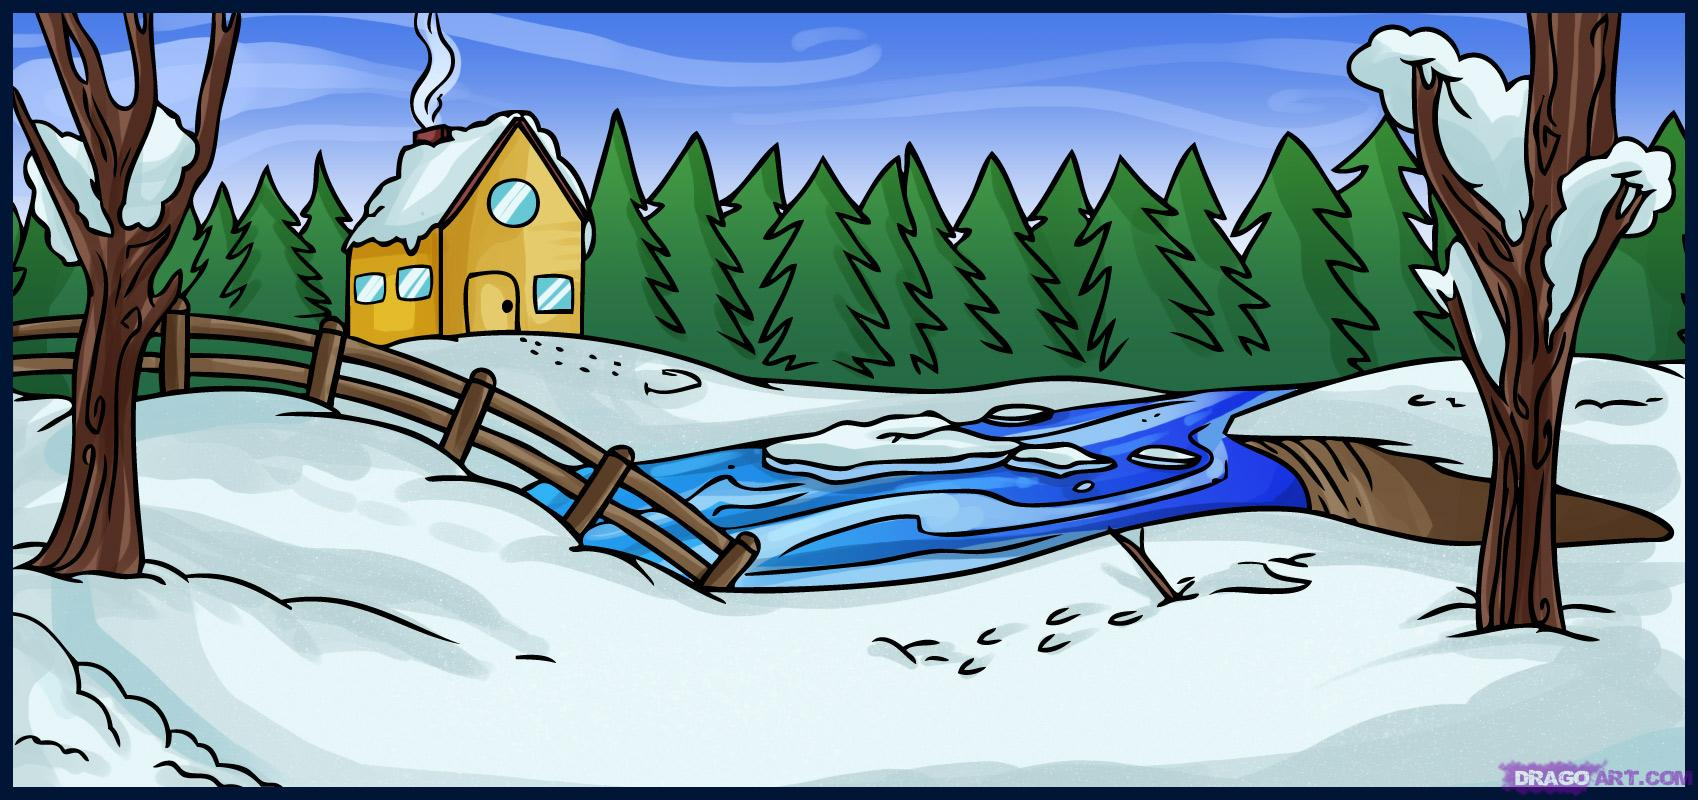 Winter Drawing Images at GetDrawings.com | Free for personal use ...